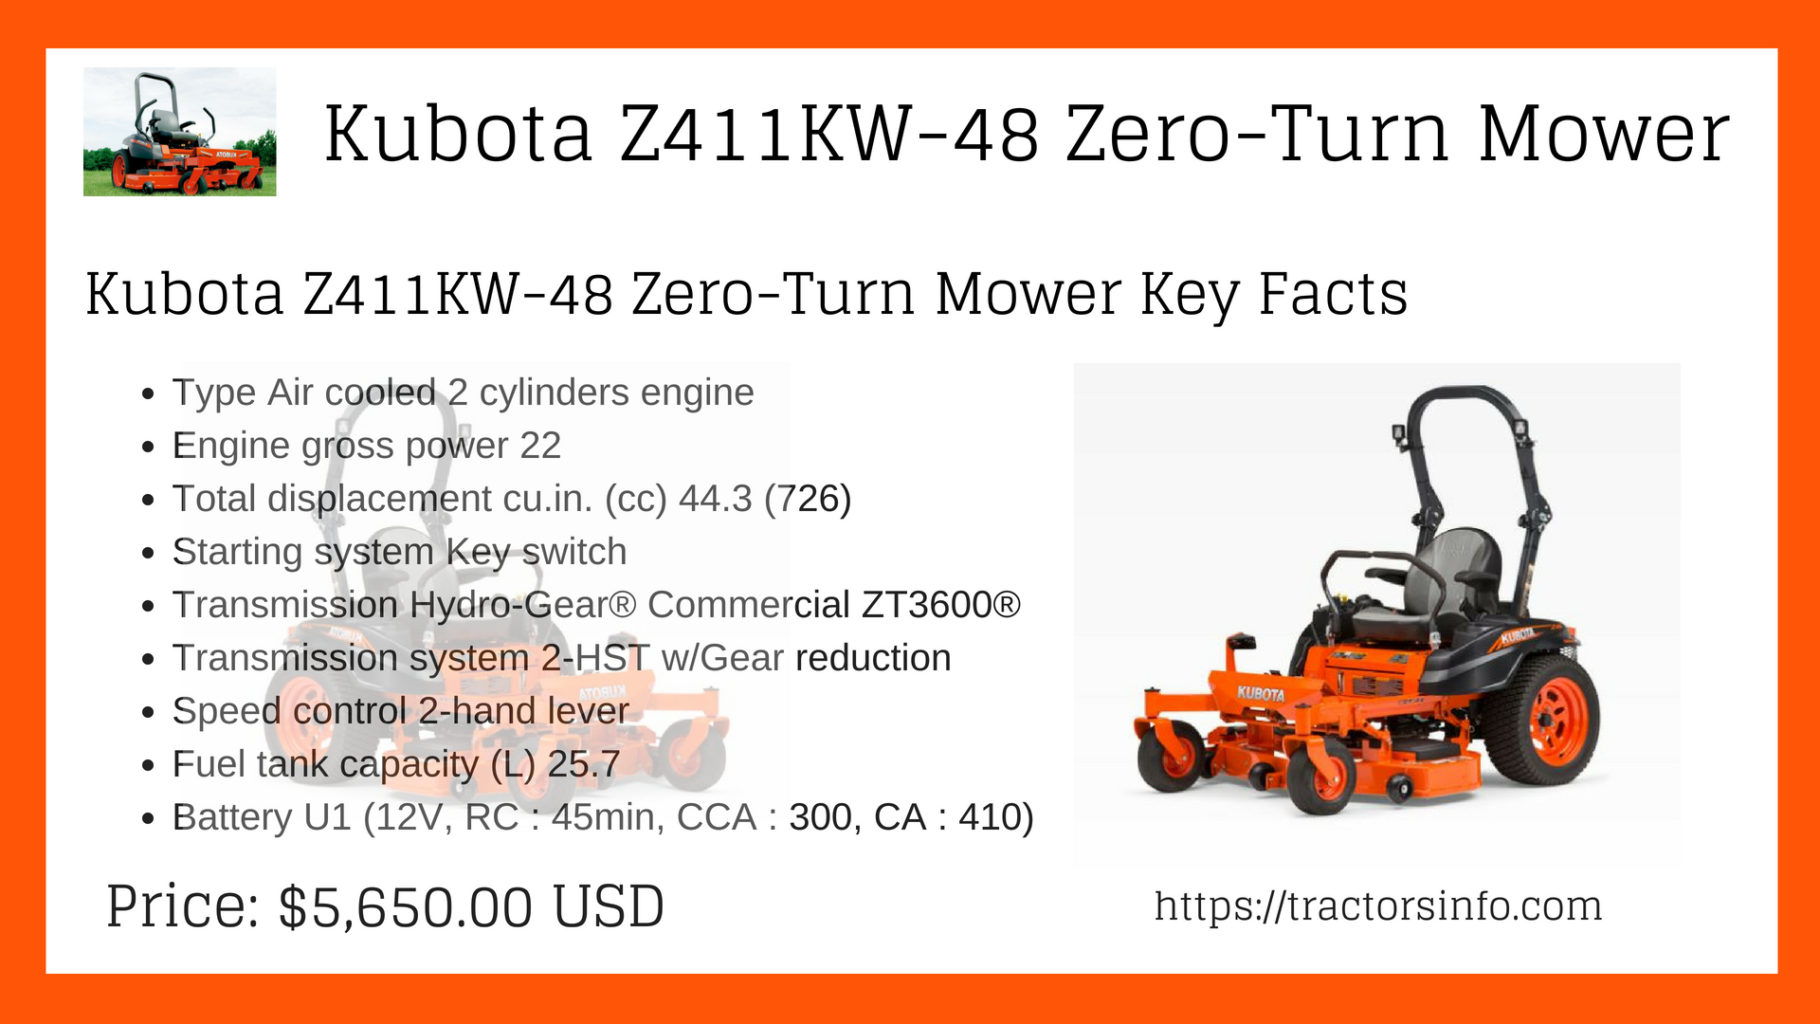 Kubota Z411KW-48 Zero-Turn Mower